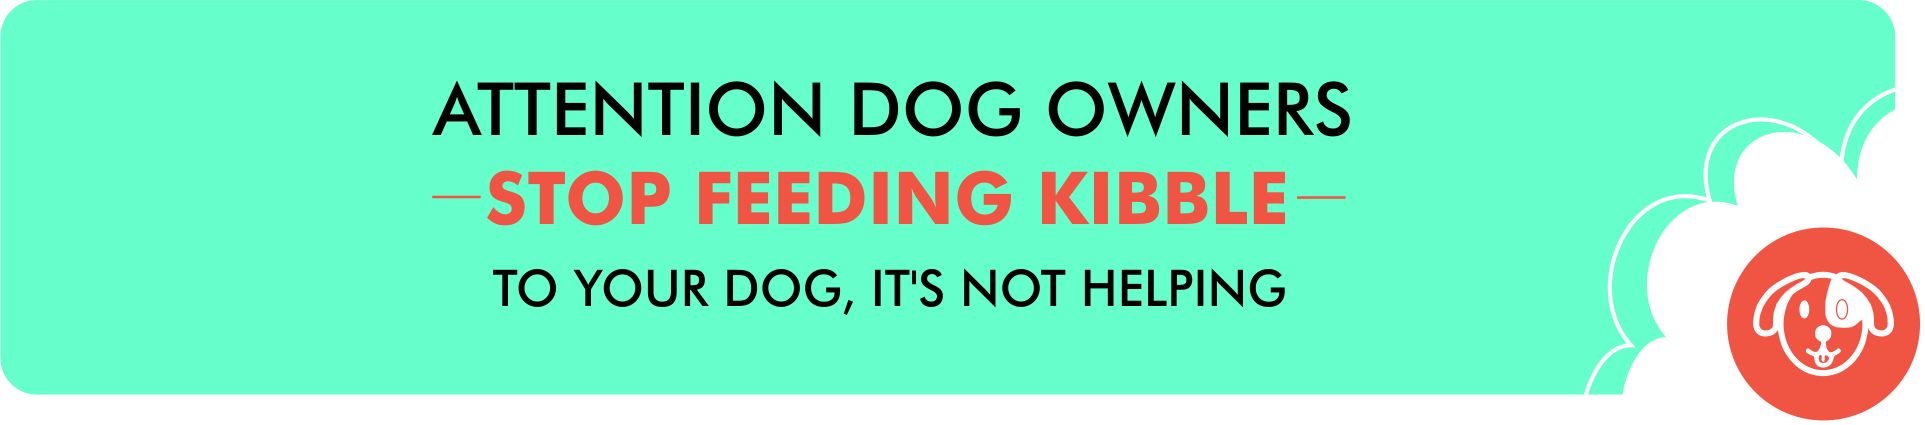 STOP FEEDING KIBBLE TO YOUR DOG